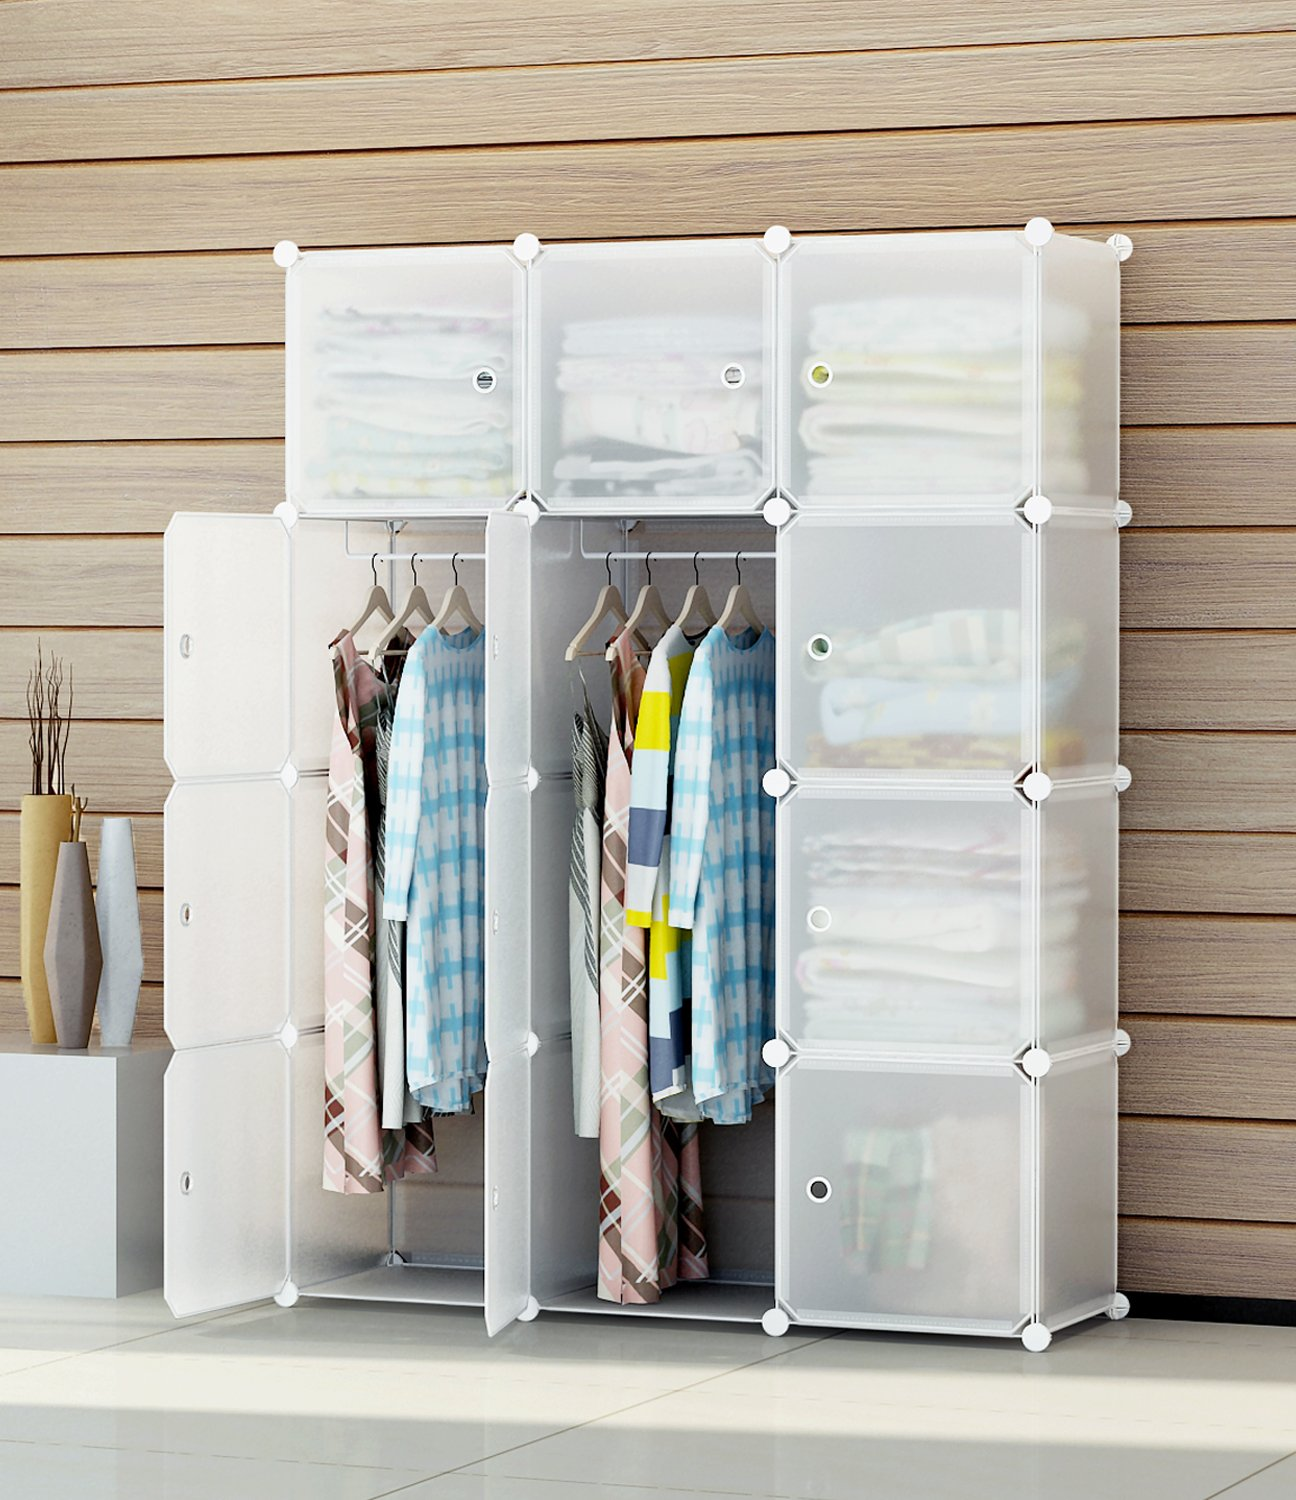 it organizers units closet design storage walk of and furniture organizer a rubbermaid keep cabinet tool organized world portable by in closets rod organize bedroom full ideas size systems